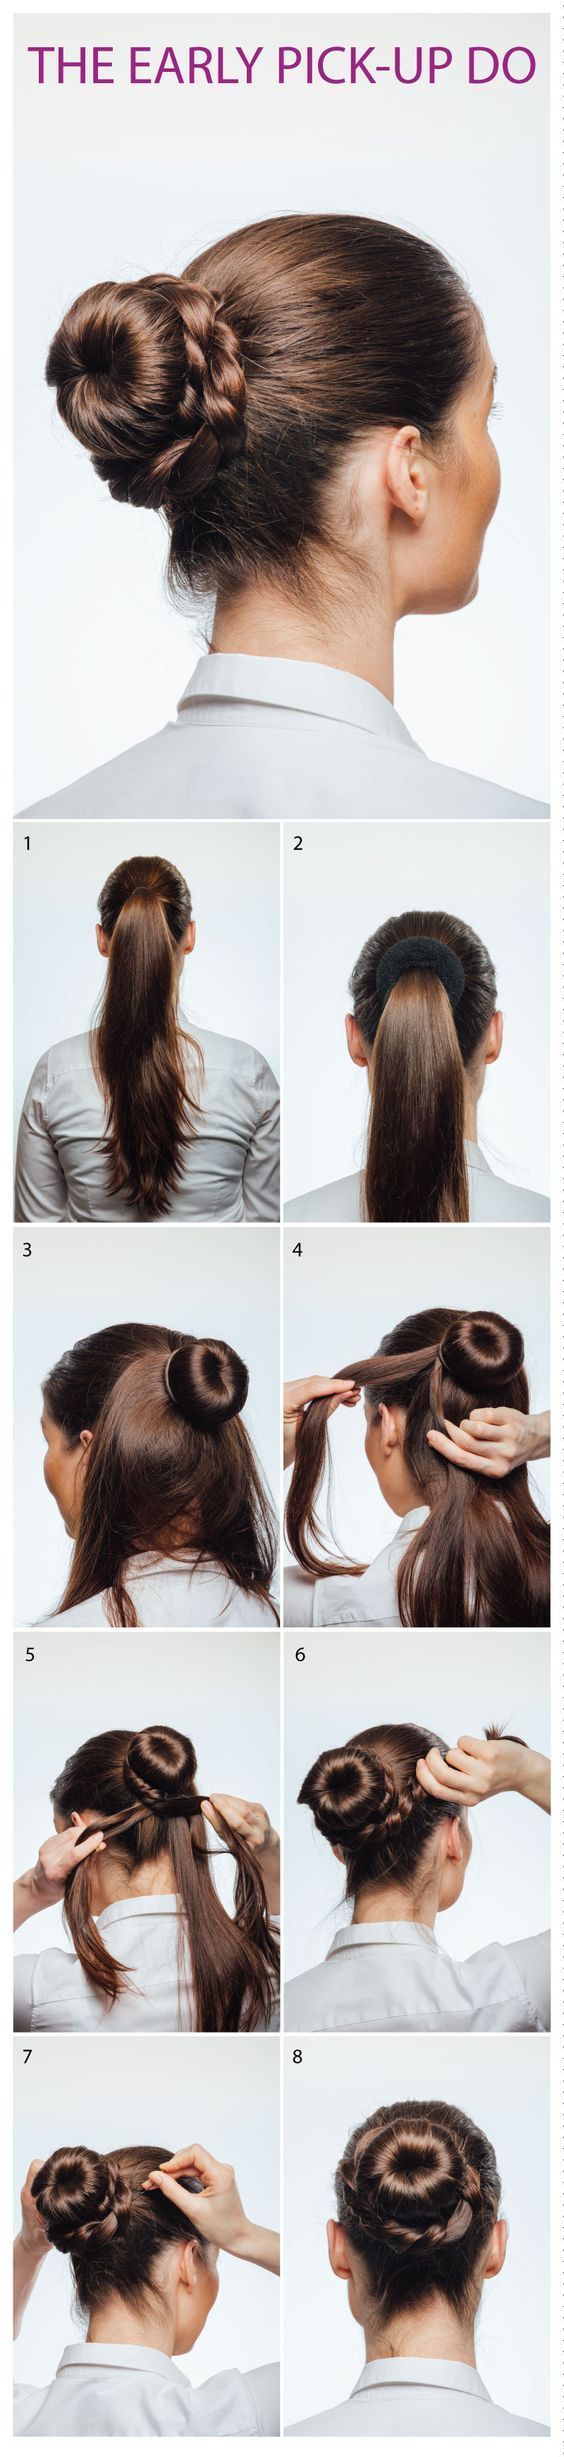 127 best Job Interview Hairstyles images on Pinterest | Job ...